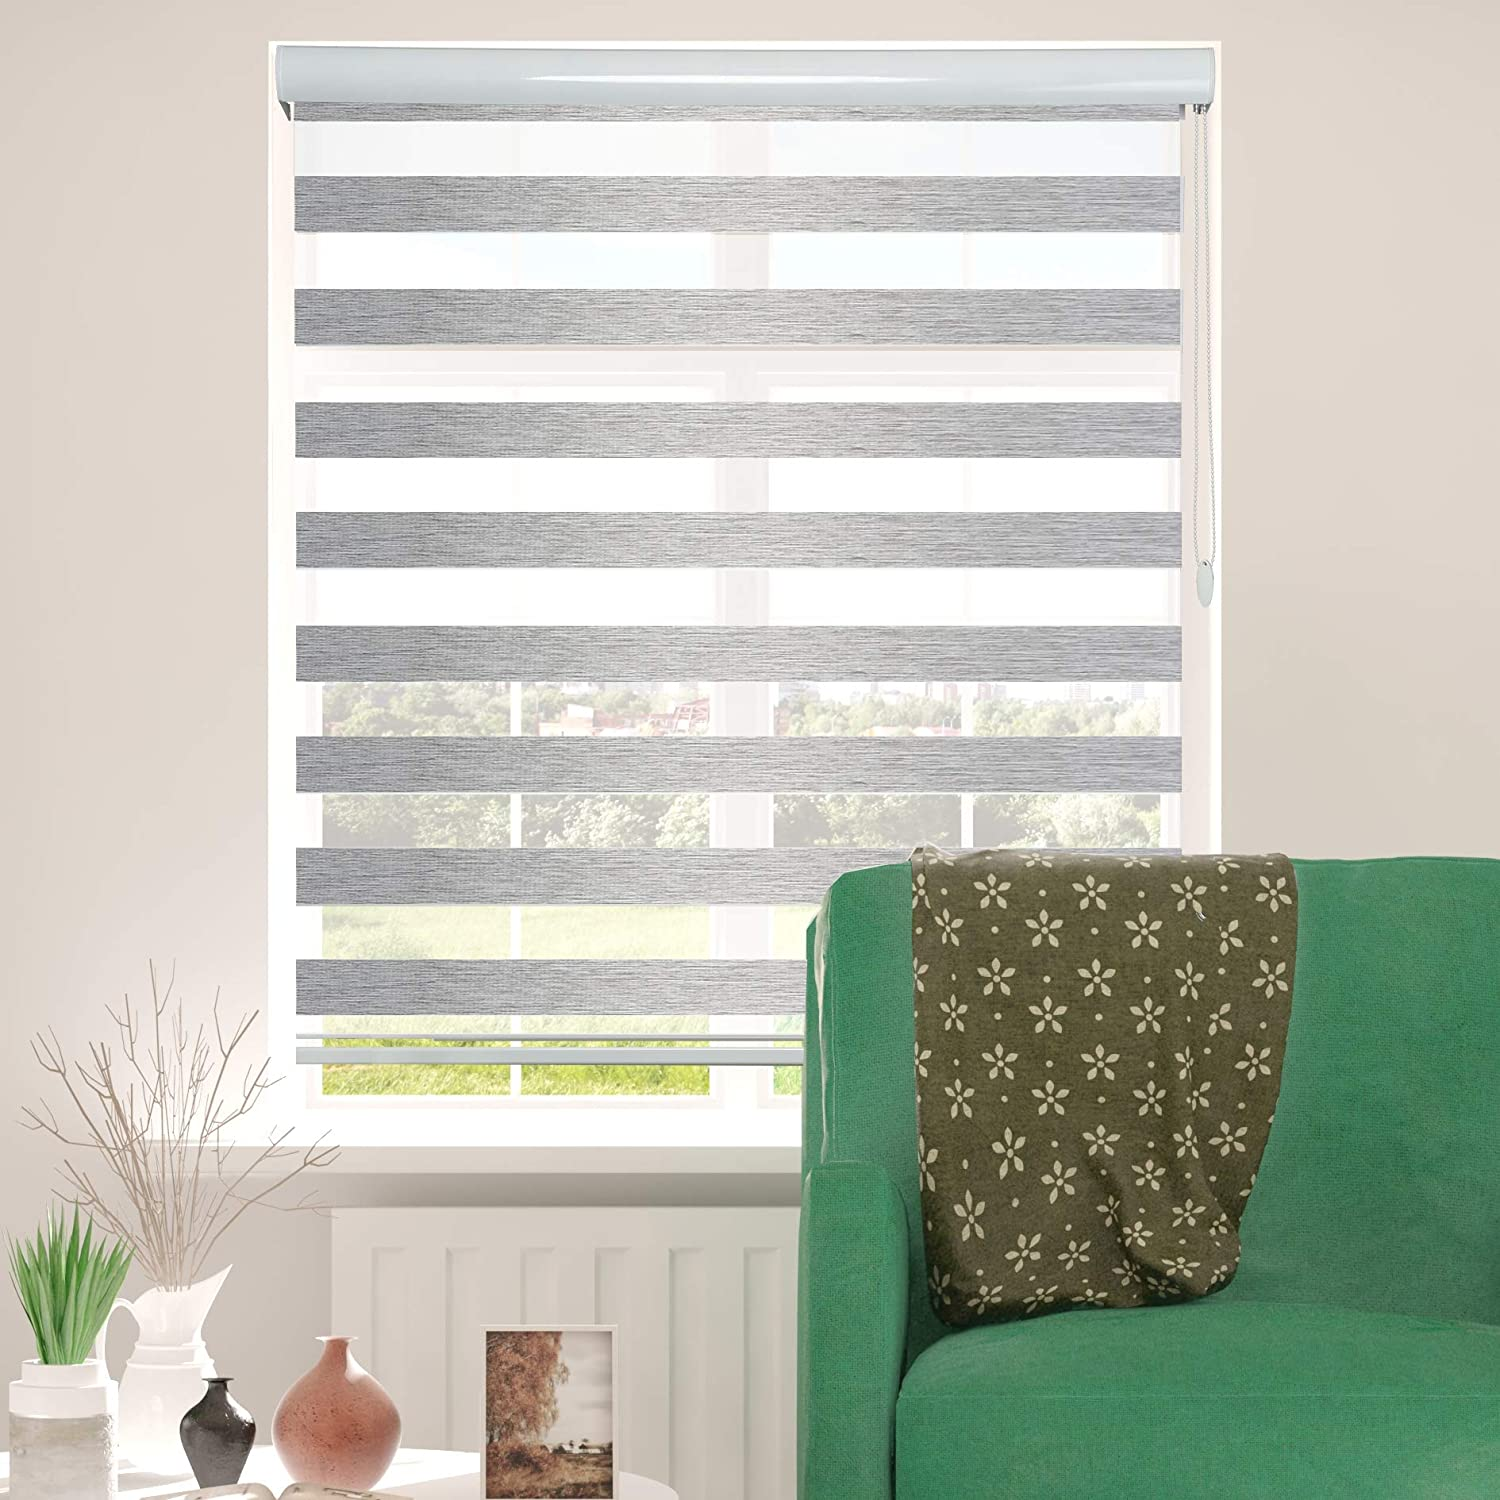 Gorgeous ShadesU Complete Free Shipping Window Shades Dual Layer Roller Blind Sheer Light Zebra